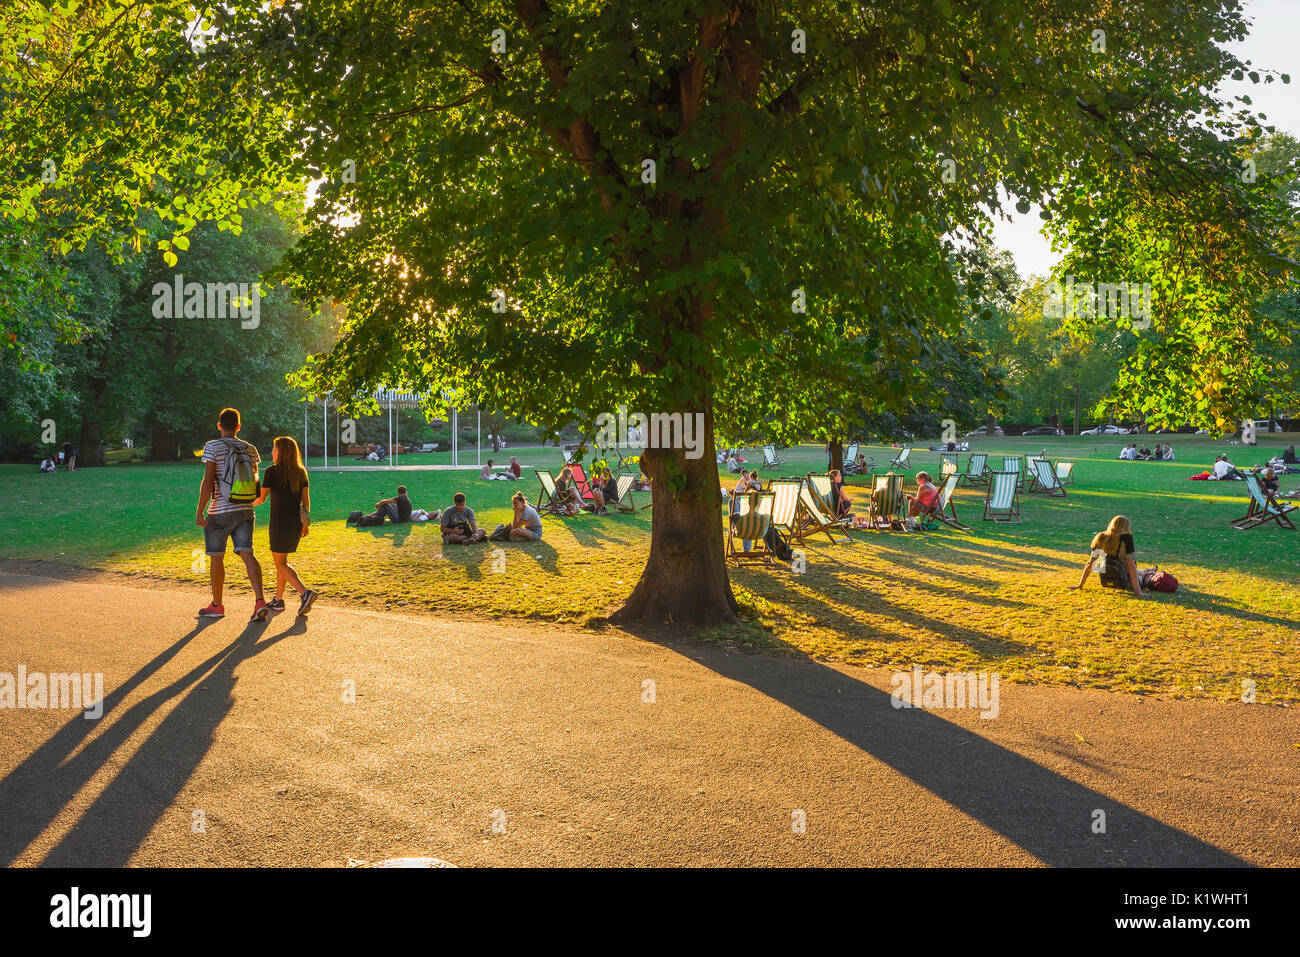 London park summer couple, people relax and socialise in St James's Park on a summer evening, London, UK. - Stock Image